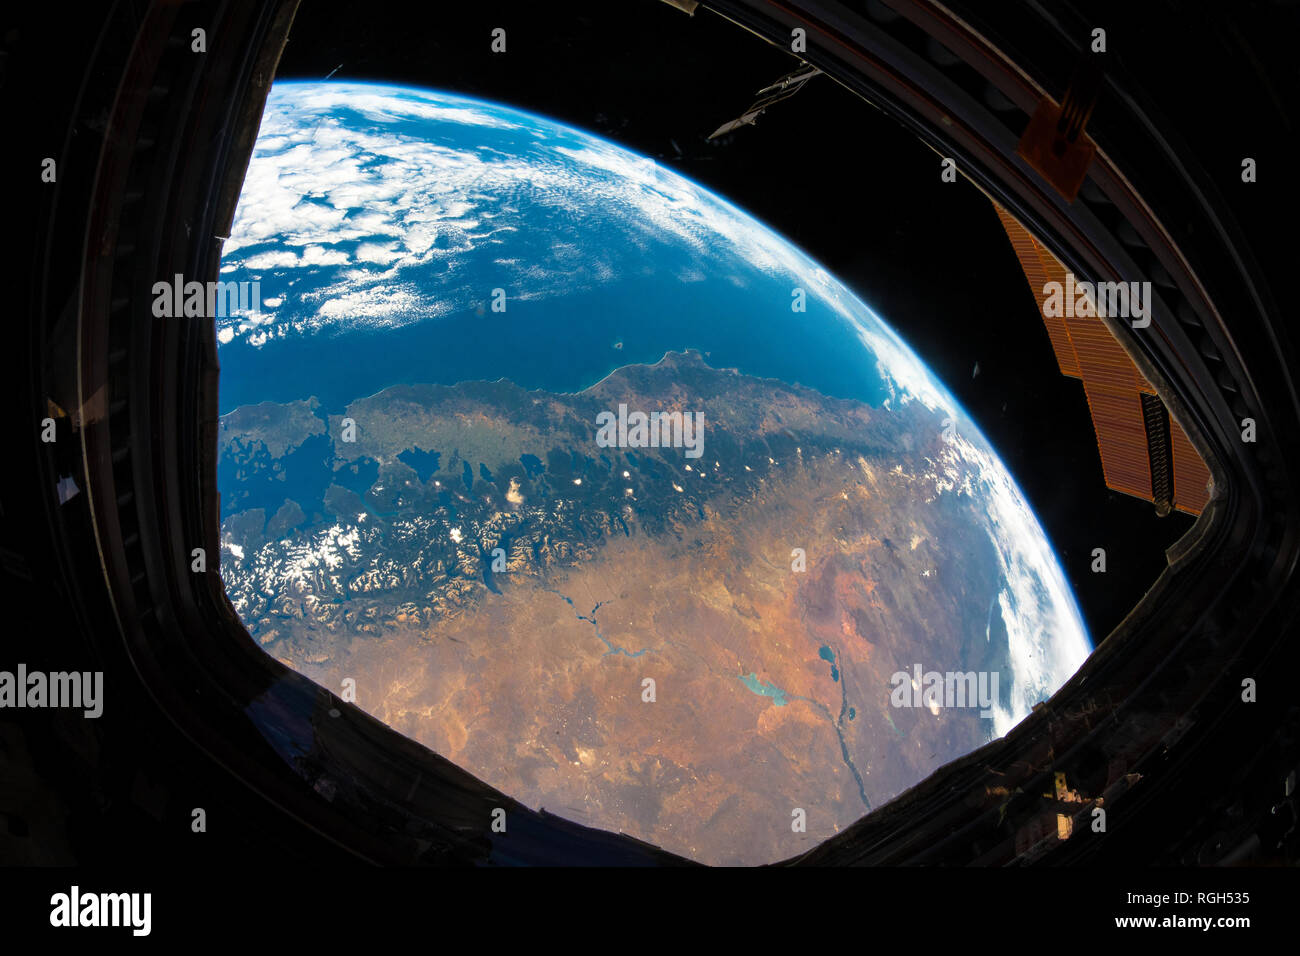 Beautiful planet Earth, our home planet, seen from the International Space Station. Framed images. Images are a  handout from NASA. I have cleaned and - Stock Image